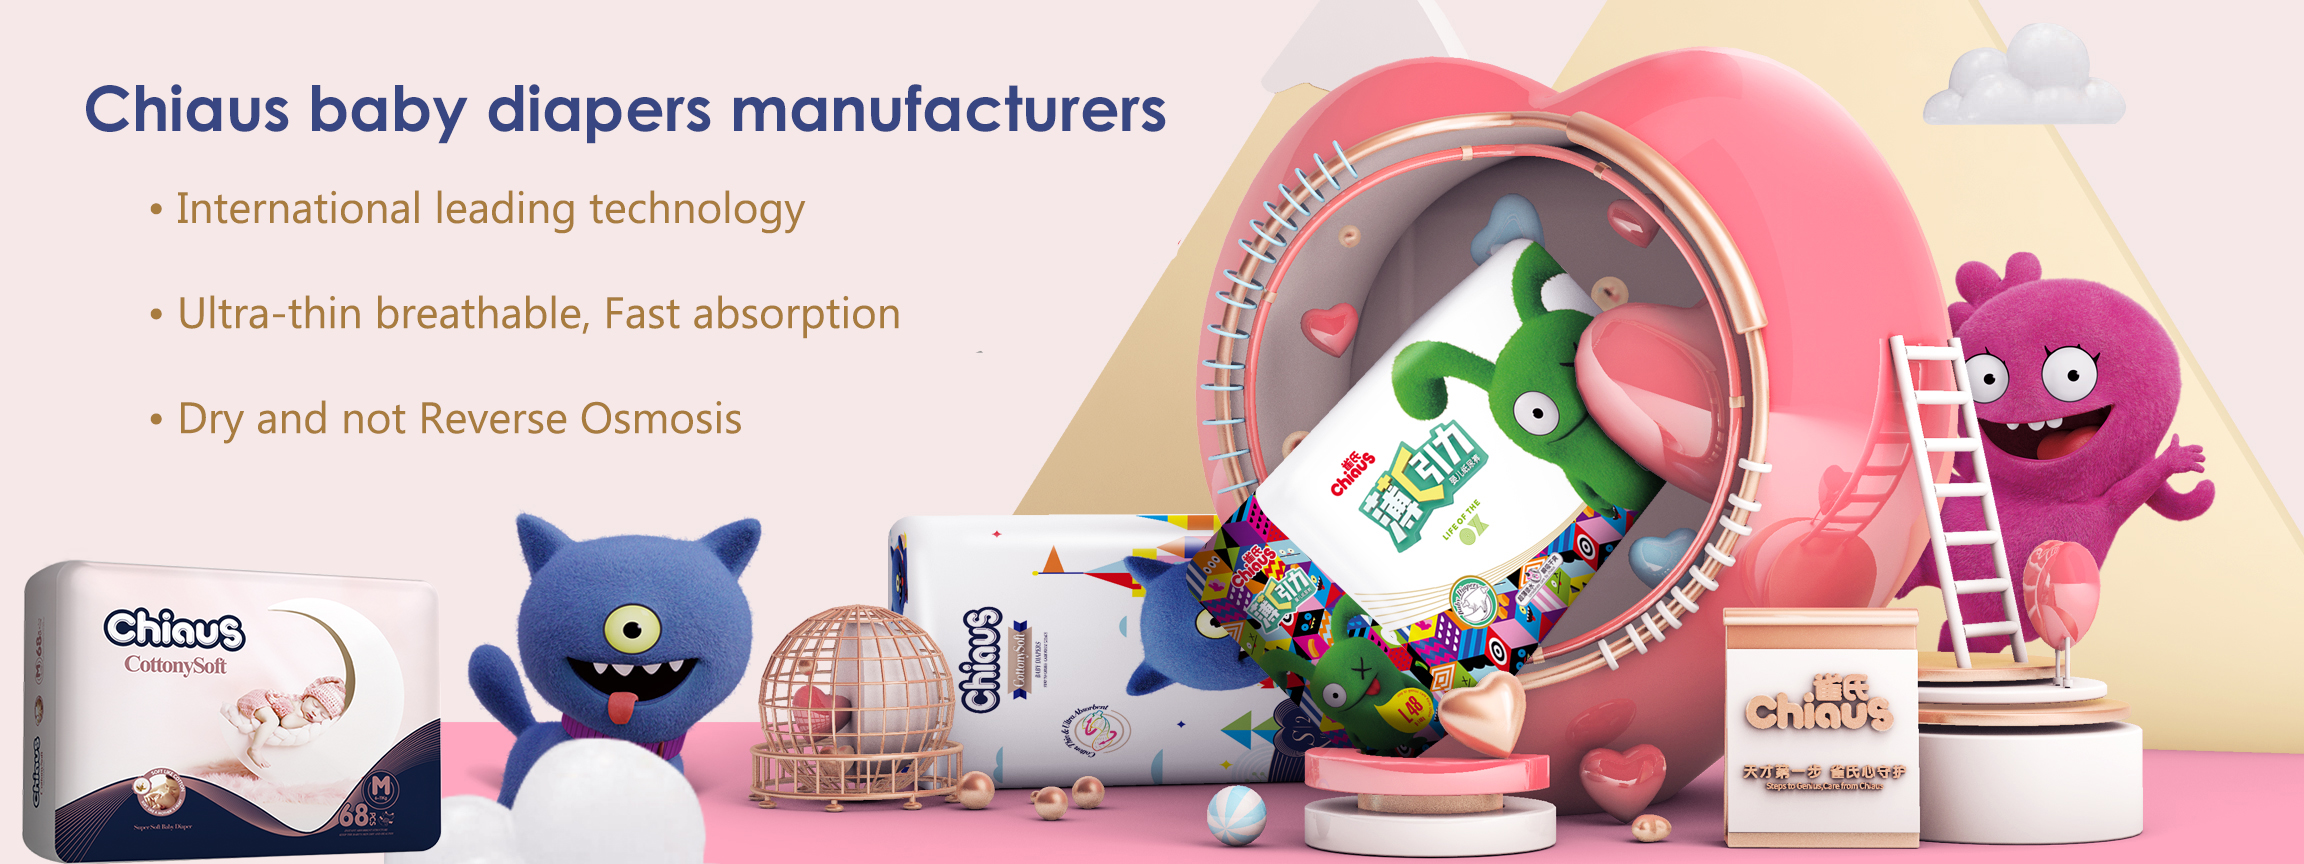 Best baby diapers suppliers baby diaper factory in China. Find Diapers, Choice Chiaus